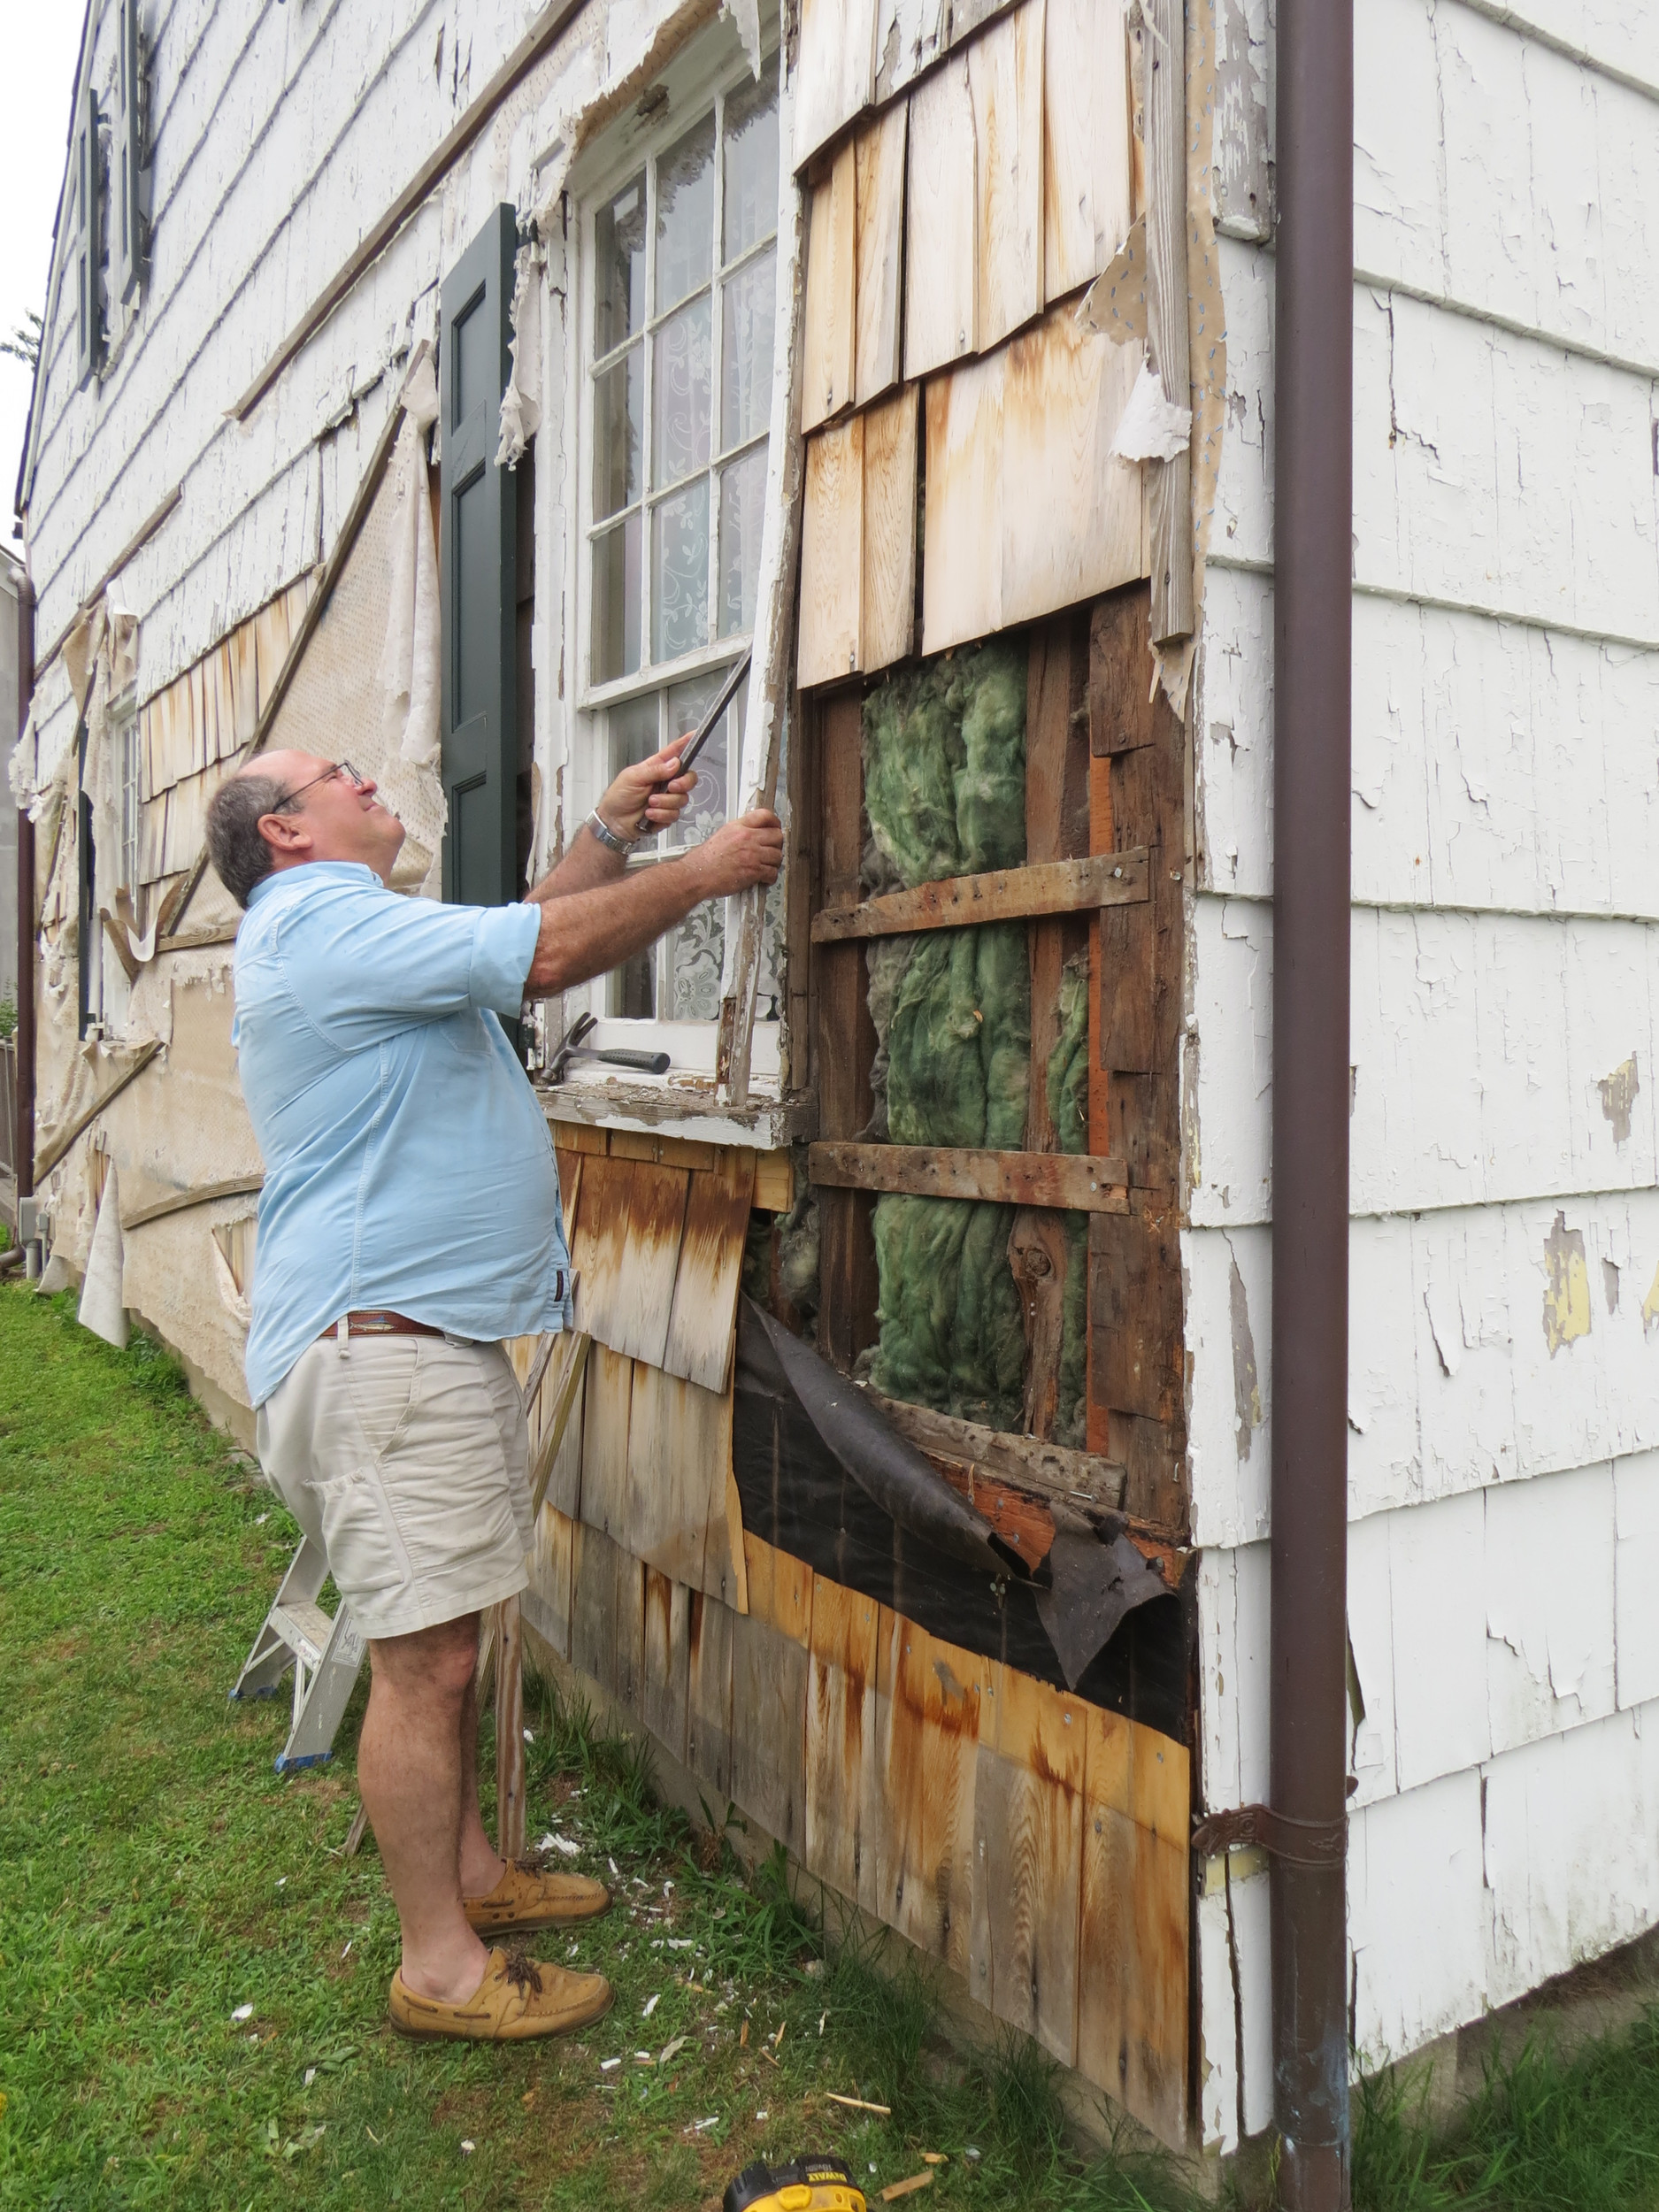 Charles Doering has been working on the windows on the east wall of the Earle-Wightman house.